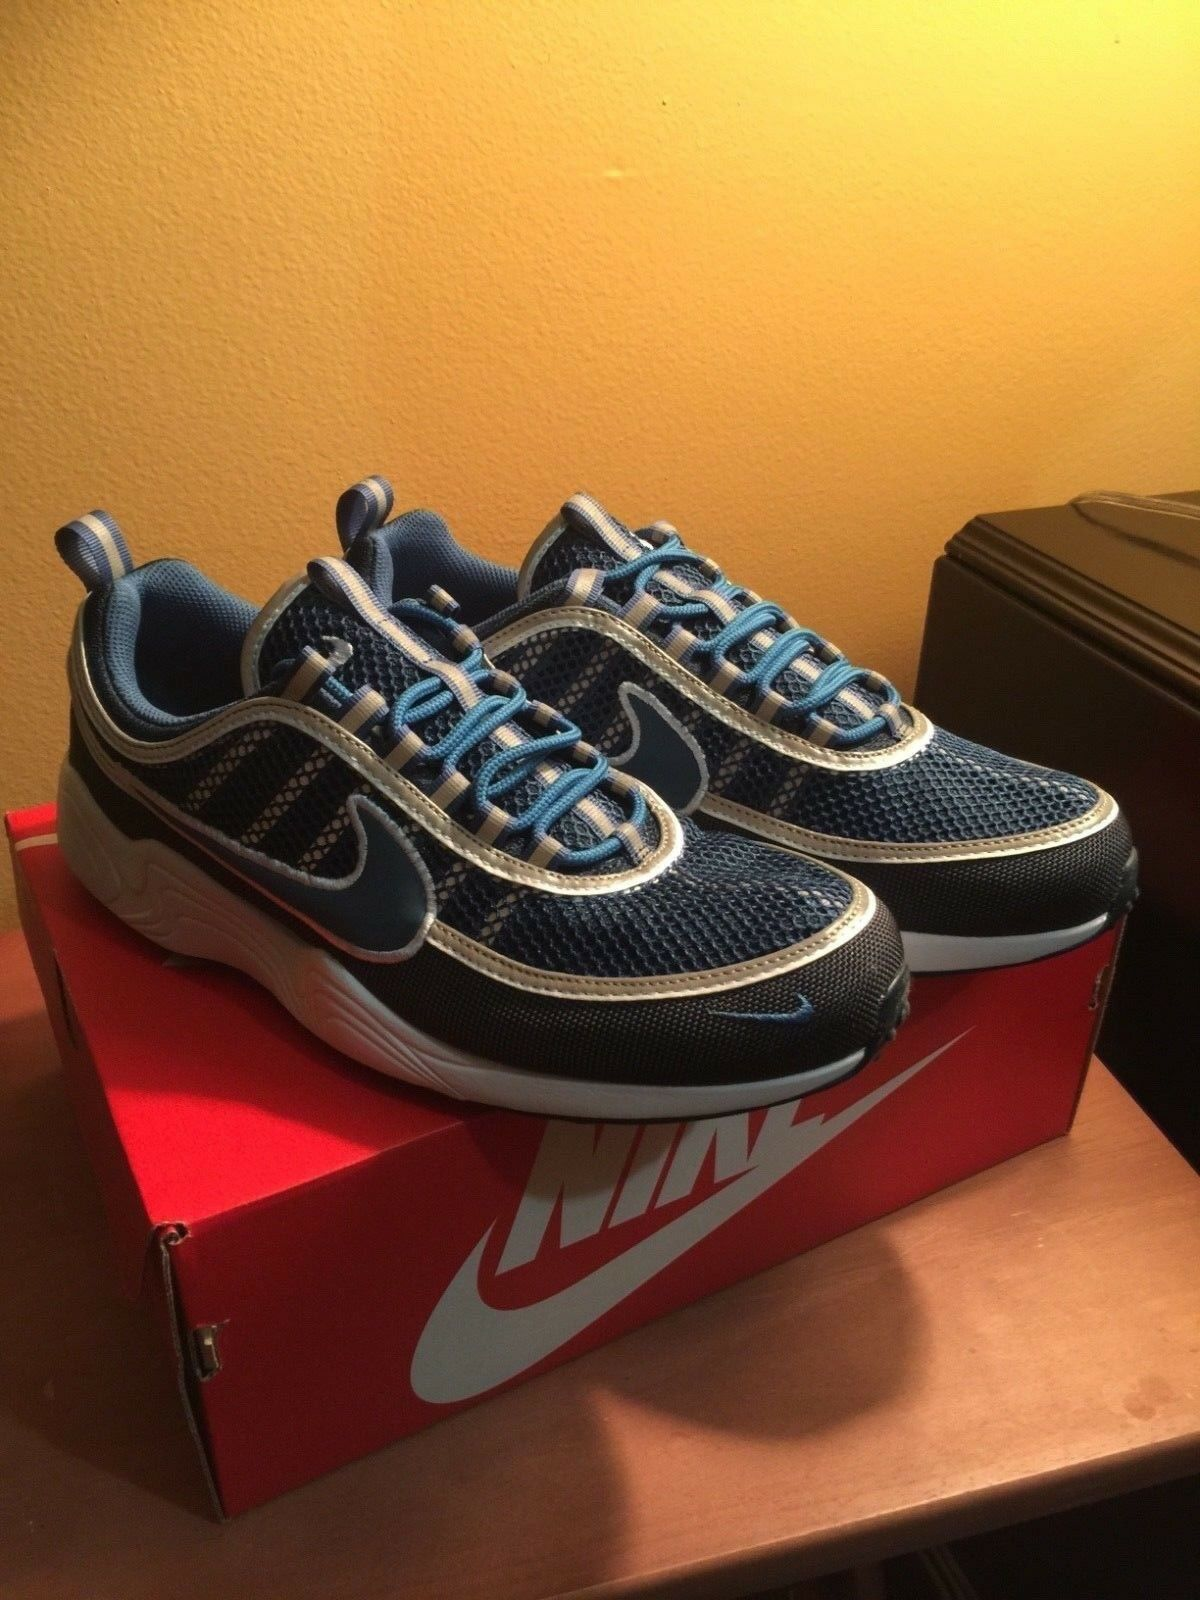 NIKE AIR ZOOM SPIRIDON '16 SZ 10 NAVY/BLUE 926955 400 SNEAKERS SHOES    Jordan